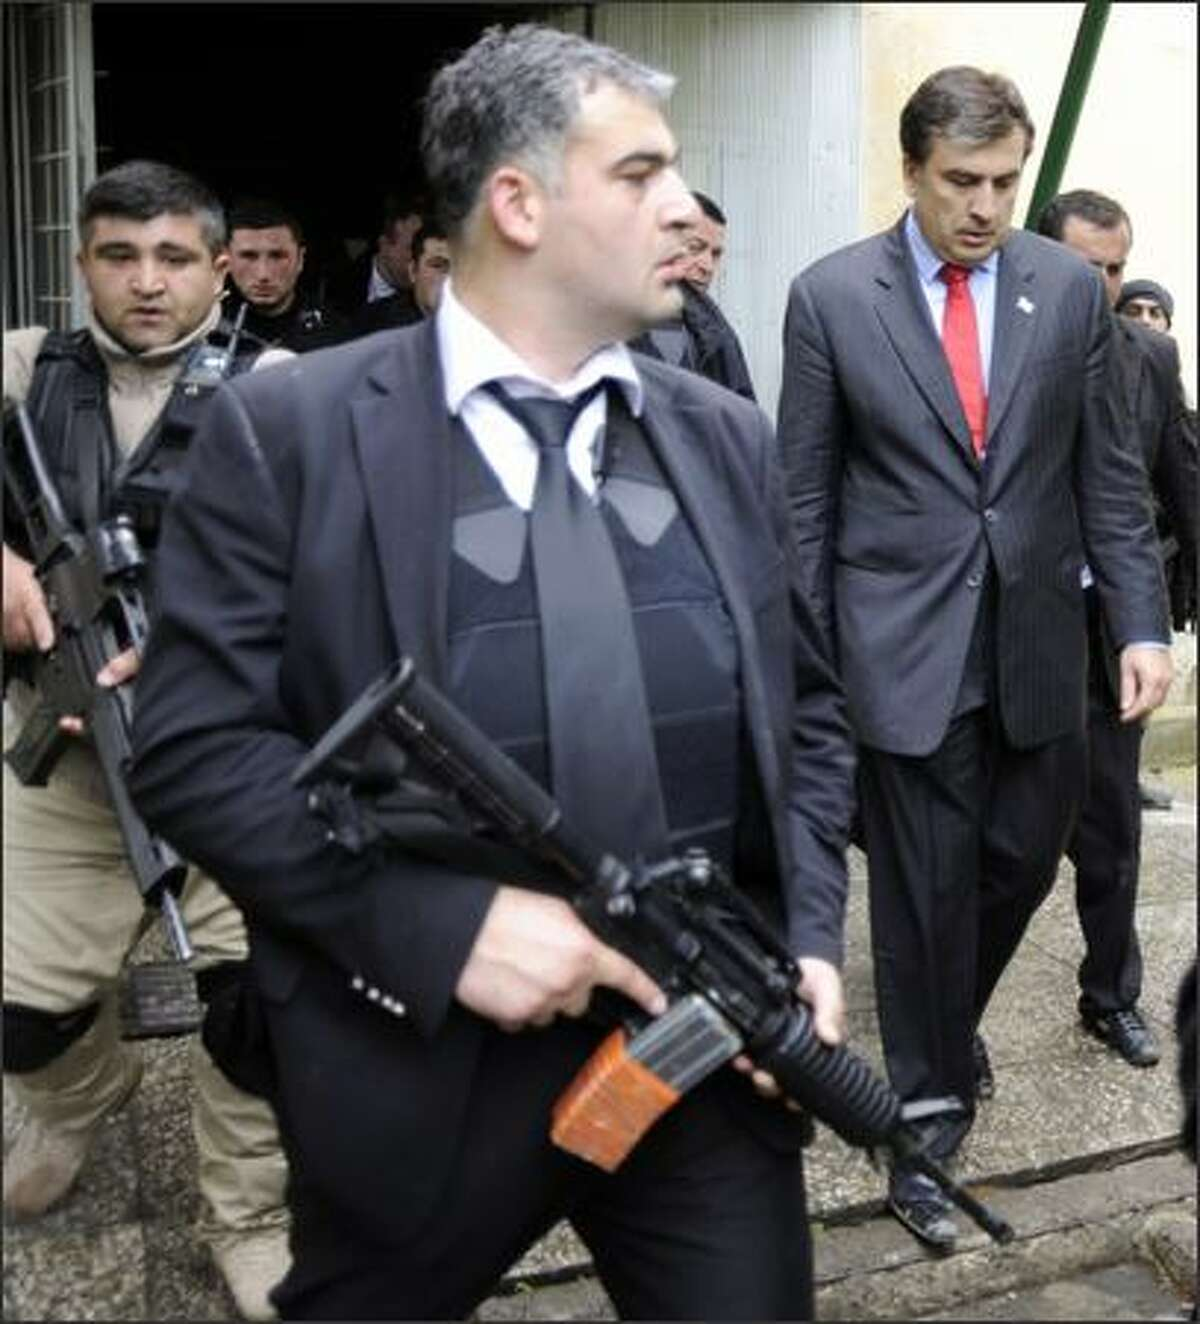 Georgian President Mikheil Saakashvili (R), surrounded by his guards, enters the Mukhrovani military base where some soldiers staged a mutiny, six miles east of Tbilisi. Georgia put down a mutiny at a military base on Tuesday and accused Russia of financing a coup to stir up trouble on the eve of NATO war games in the ex-Soviet republic.